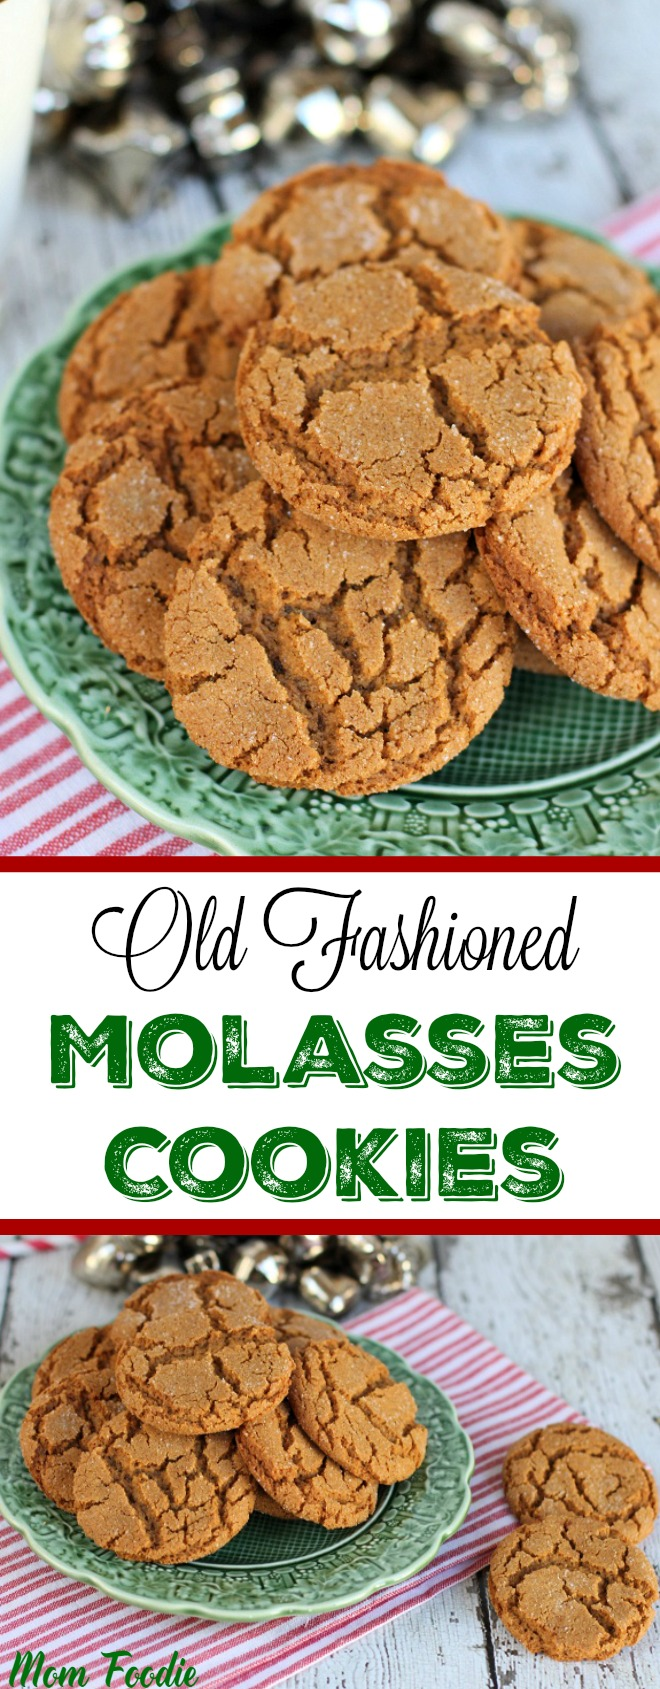 Old Fashioned Molasses Cookies Recipe - Mom Foodie